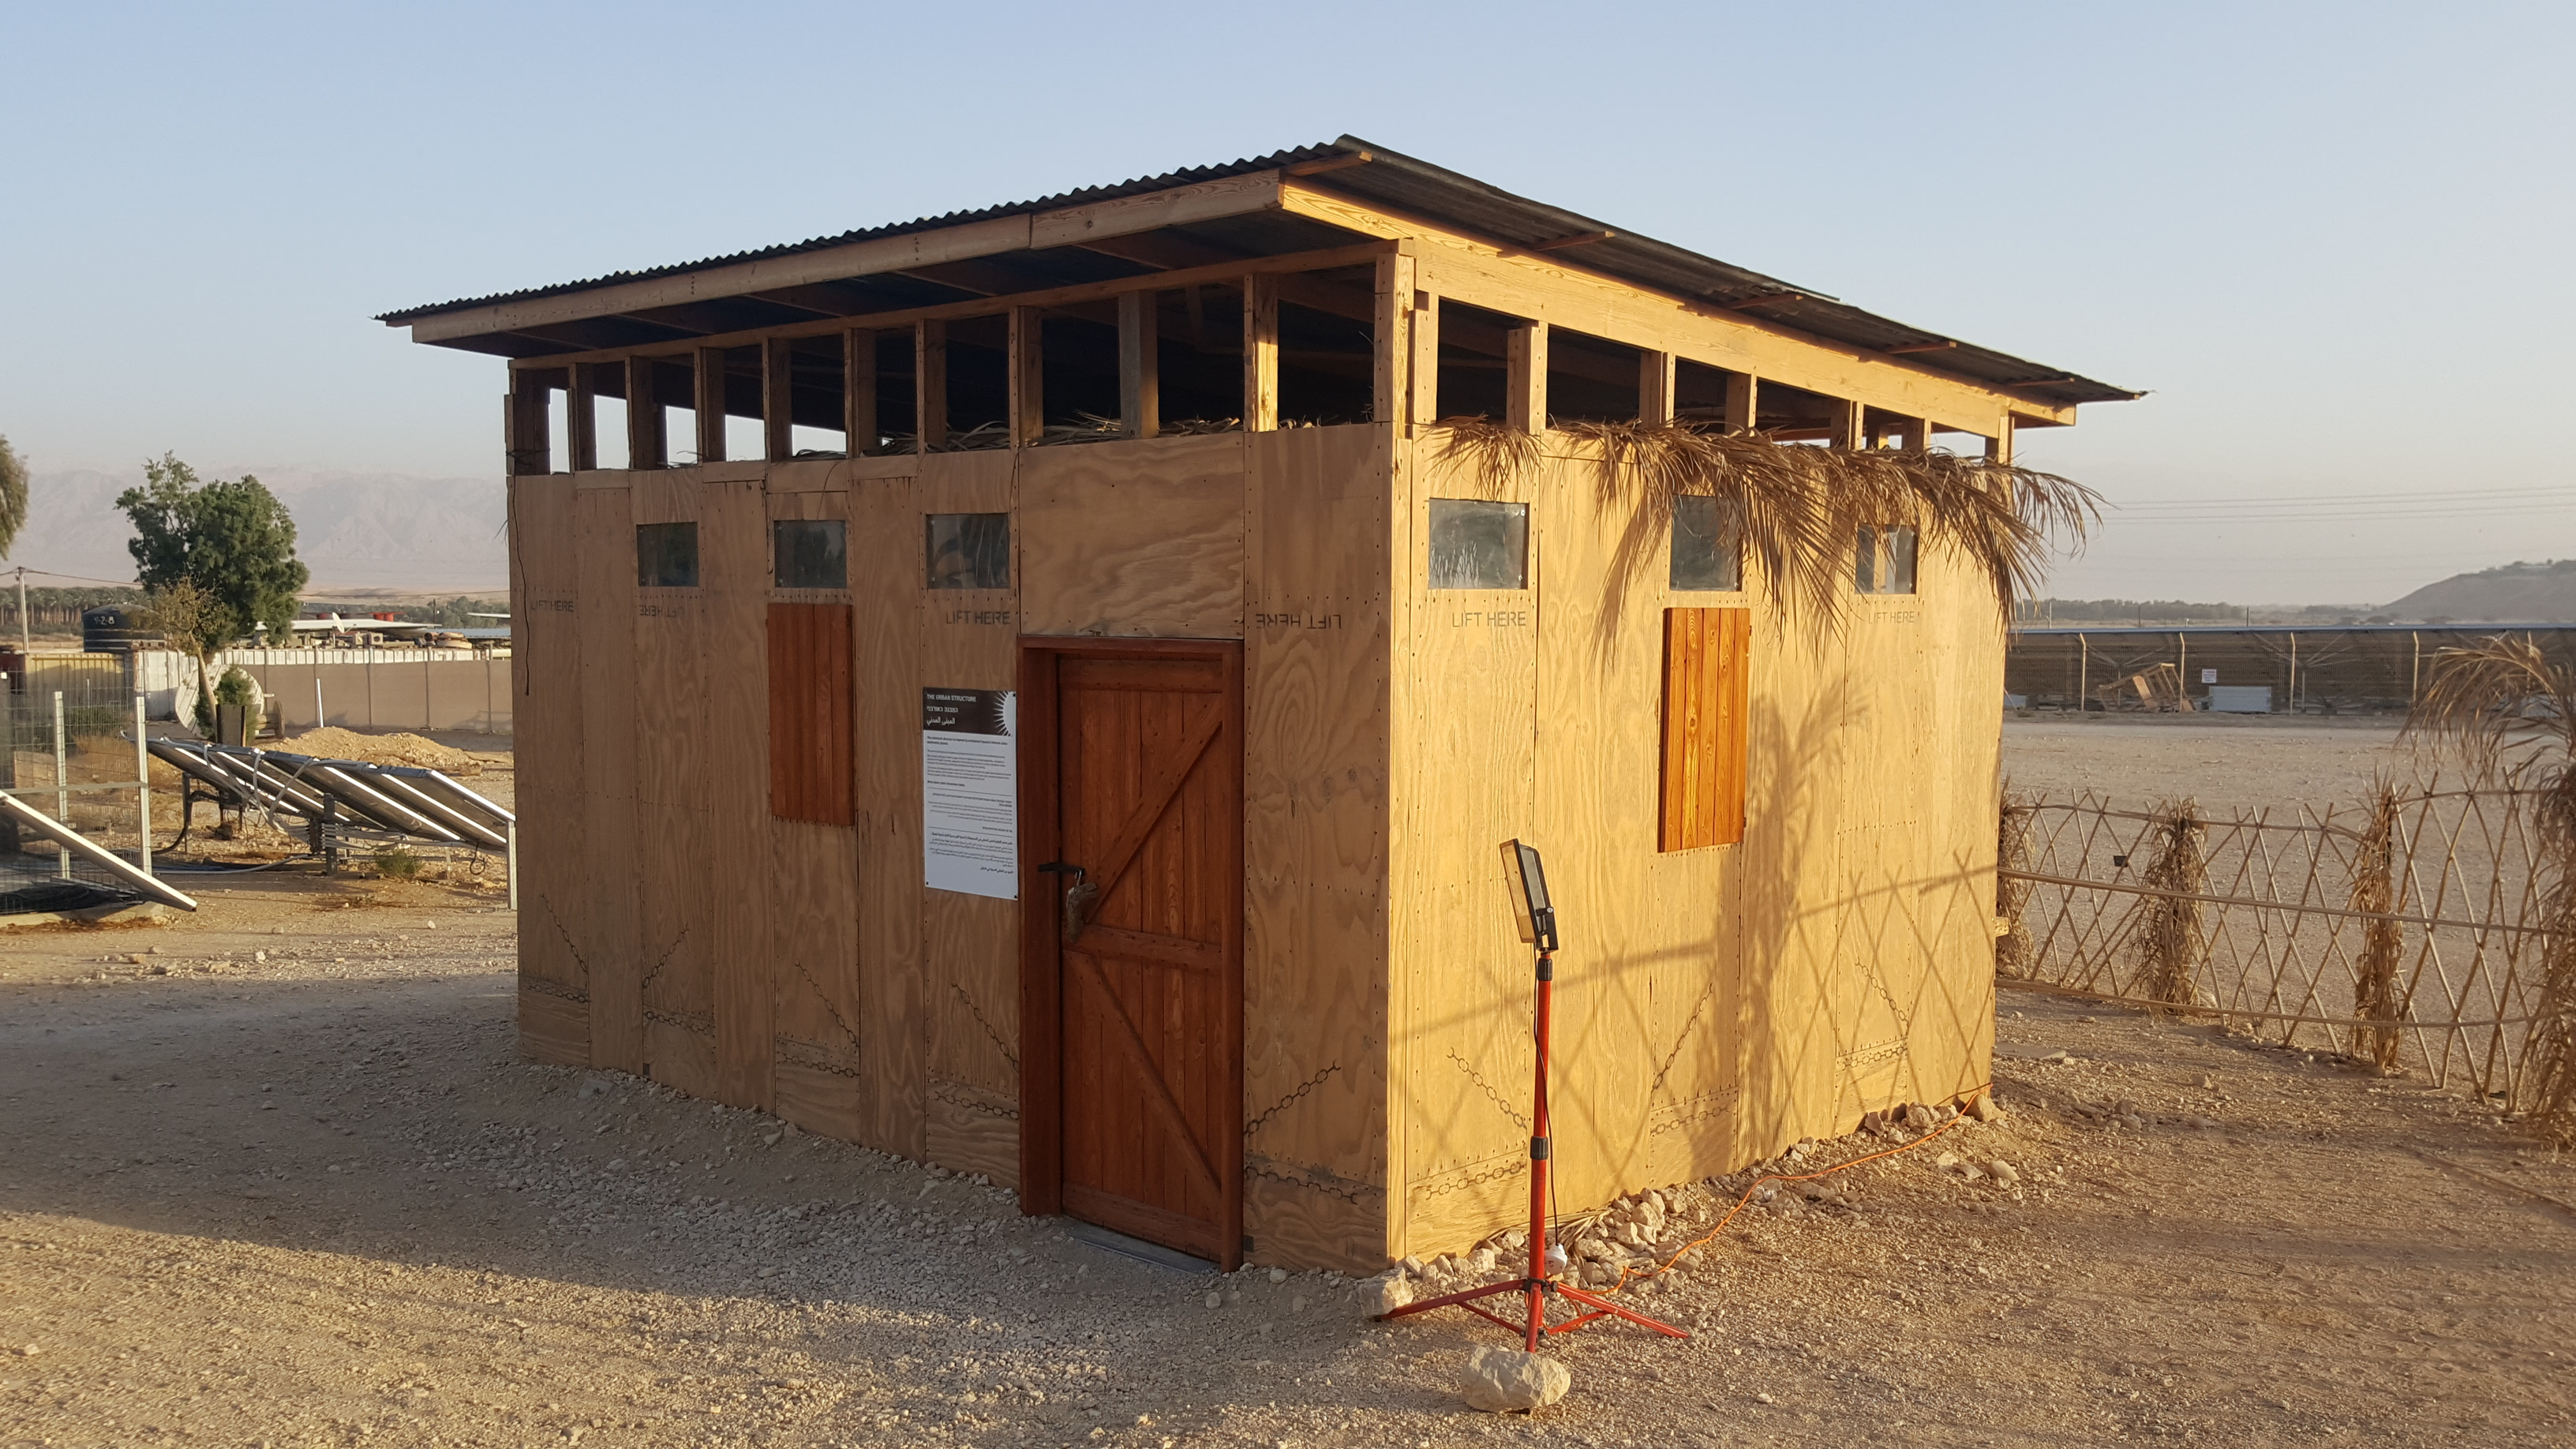 Eilat-Eilot off-grid wood public structure cabin